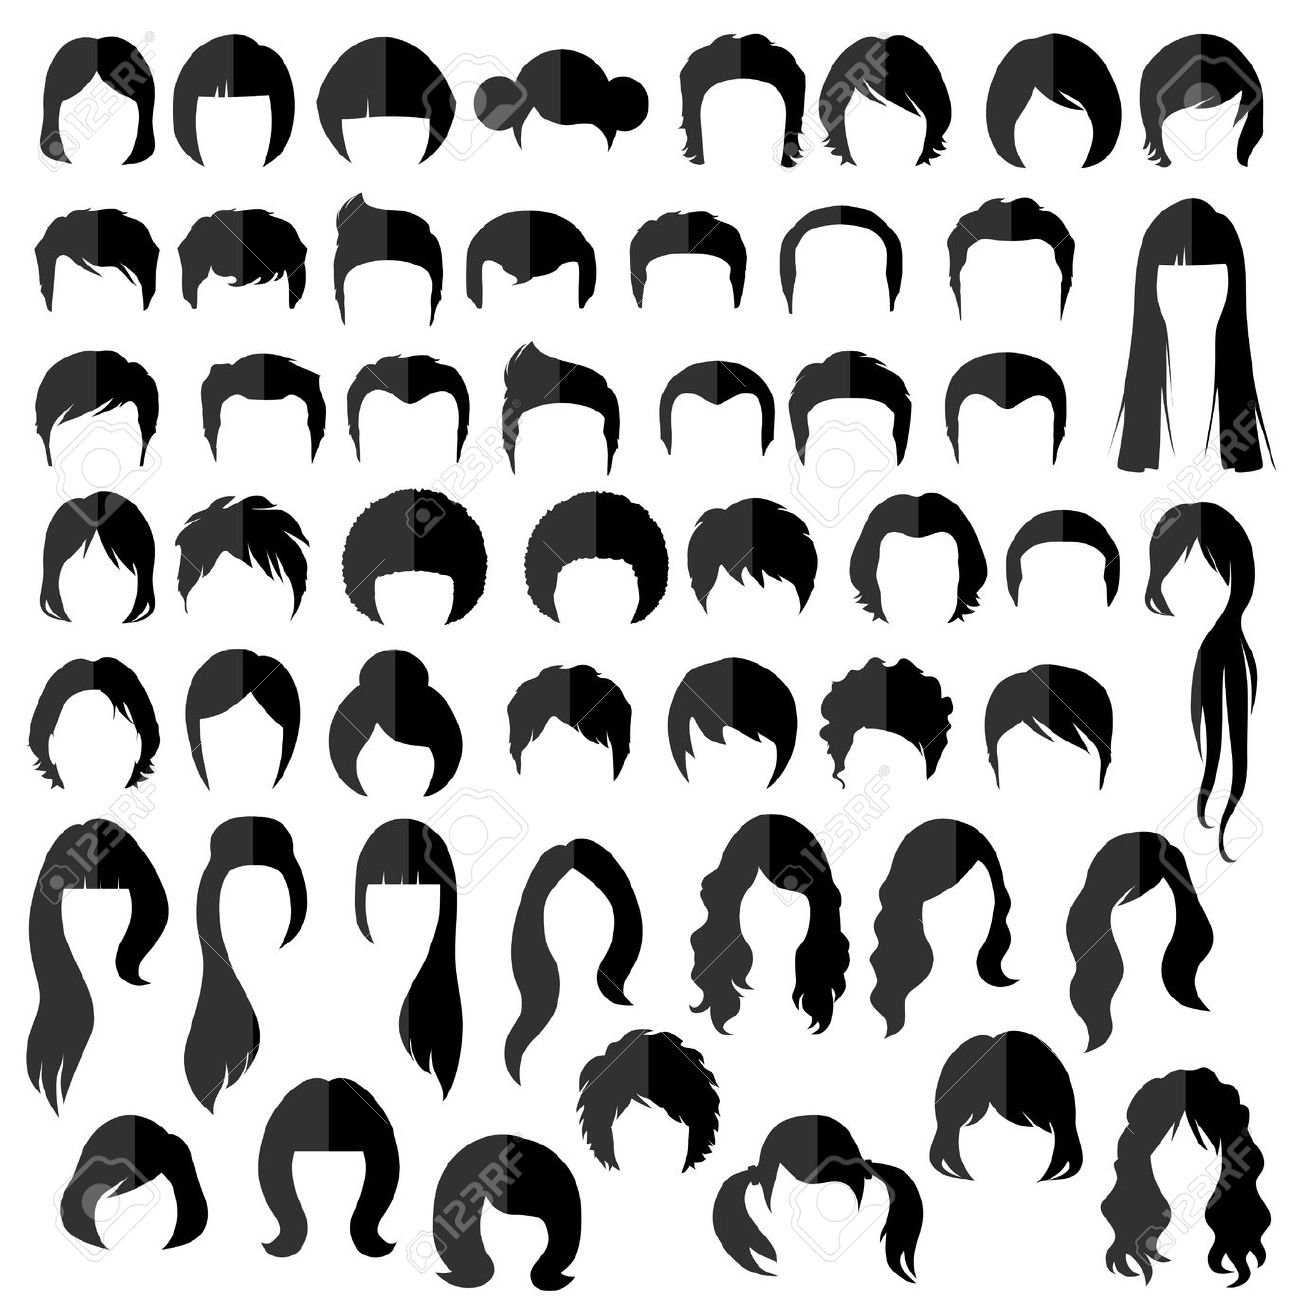 6,697 Afro Stock Vector Illustration And Royalty Free Afro Clipart.